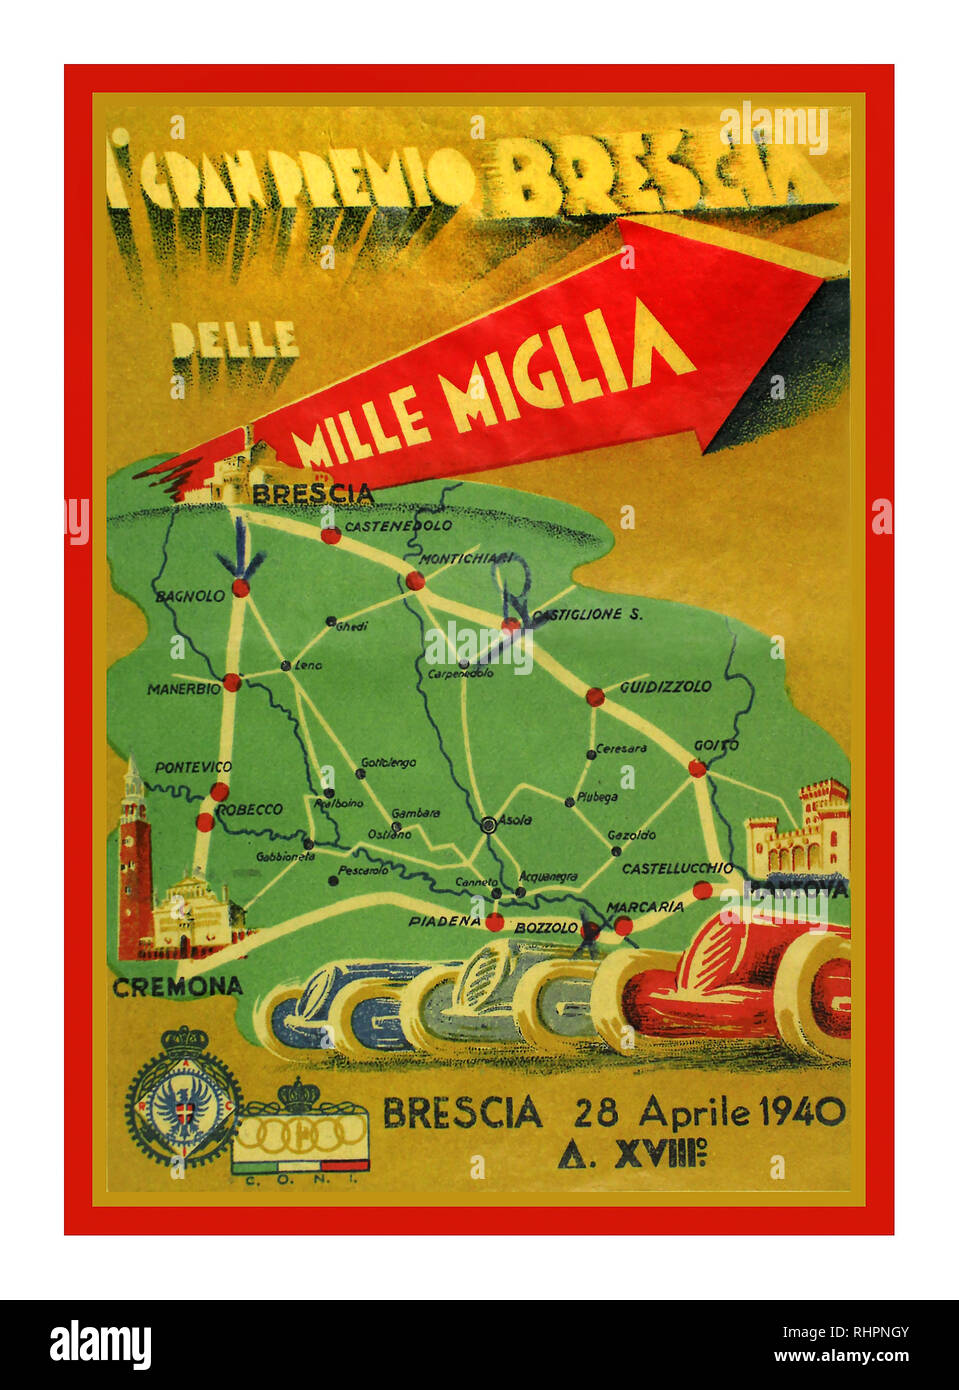 1940 Vintage Motor Racing Poster  Mille Miglia 1st Grand Prix Brescia 28th April 1940. Despite a suspension of the Mille Miglia by Mussolini due to a fatal accident in 1938 that resulted in the death of 10 spectators a smaller version of the event, officially the Gran Premio di Brescia was held over a triangular course with Brescia, Mantua and Cremona at its apexes. The race entailed nine laps over the 104 mile circuit  Von Hanstein - Baumer won the race.. Winning Speed 104.20 mph in a BMW - Stock Image